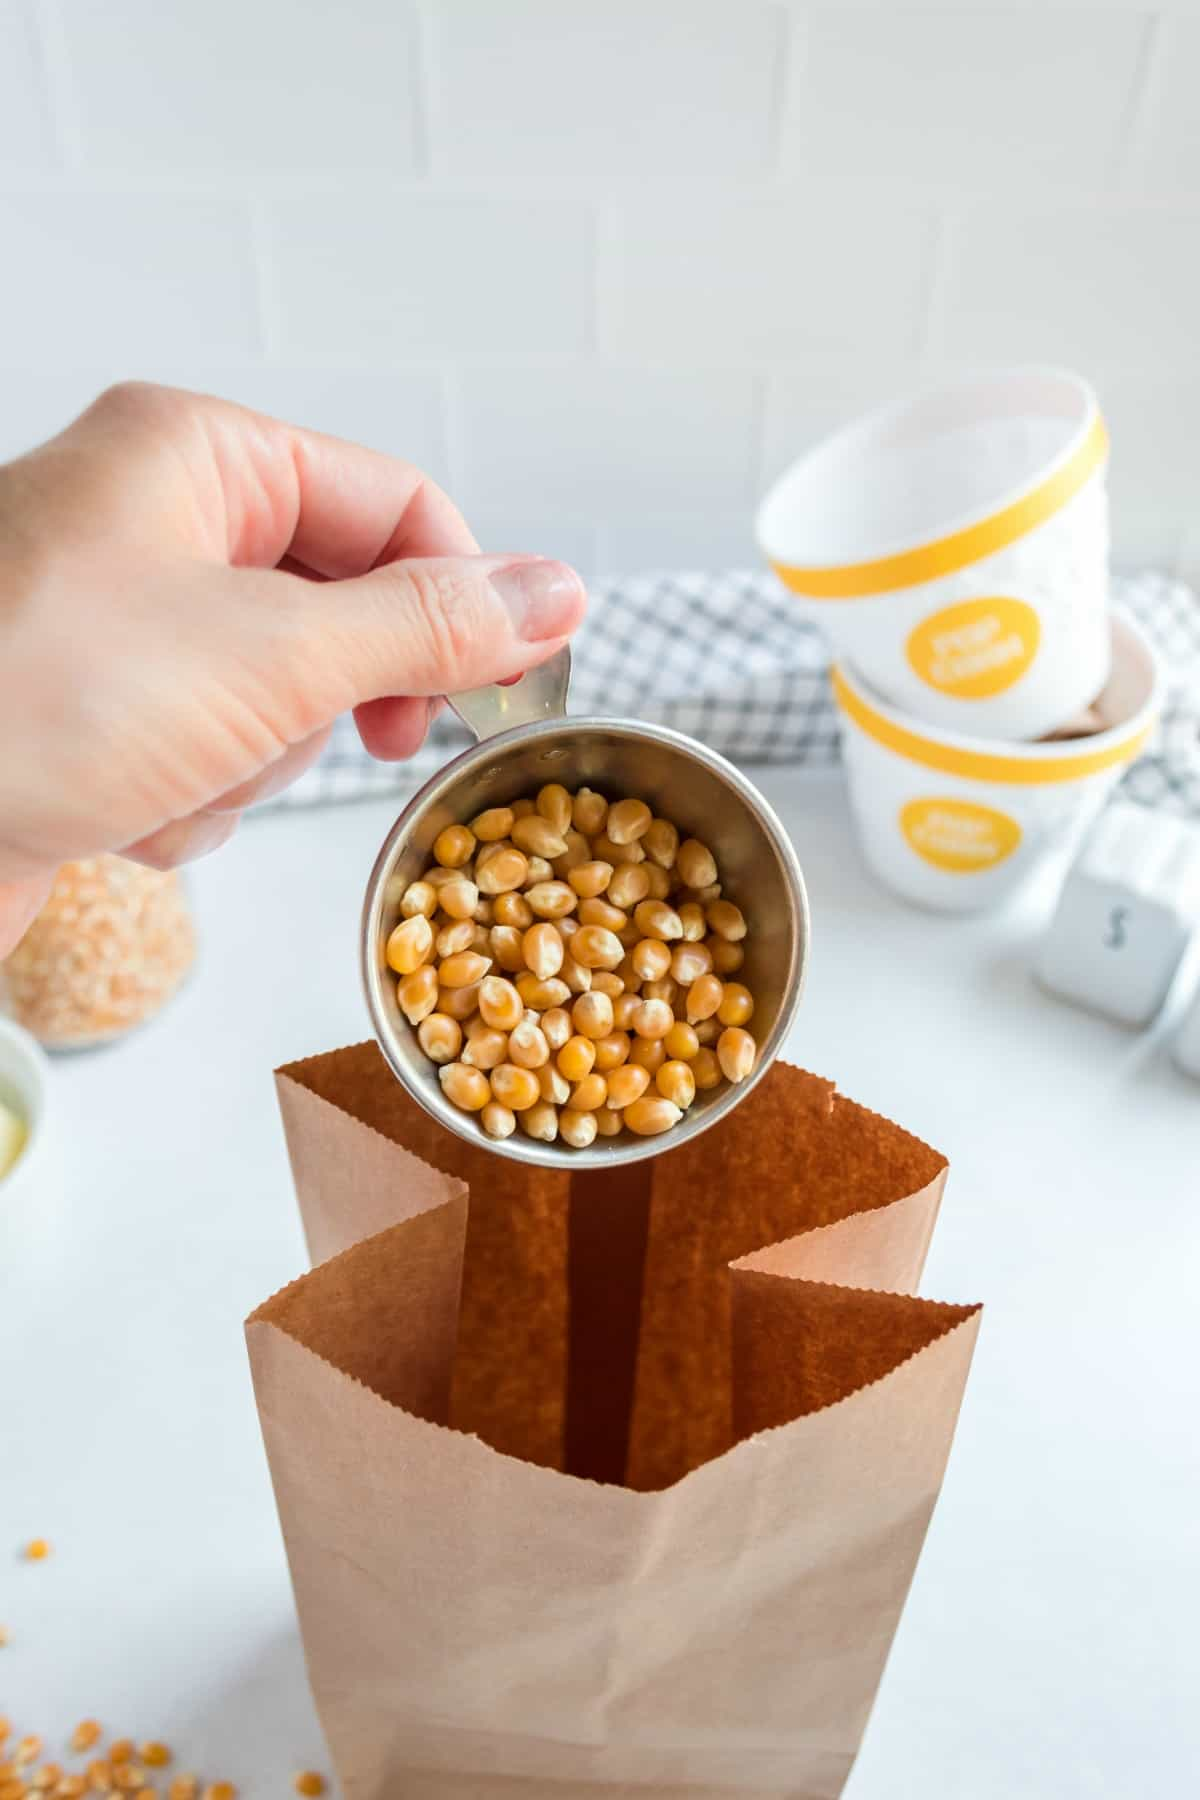 Popcorn kernels being scooped into a brown paper bag.